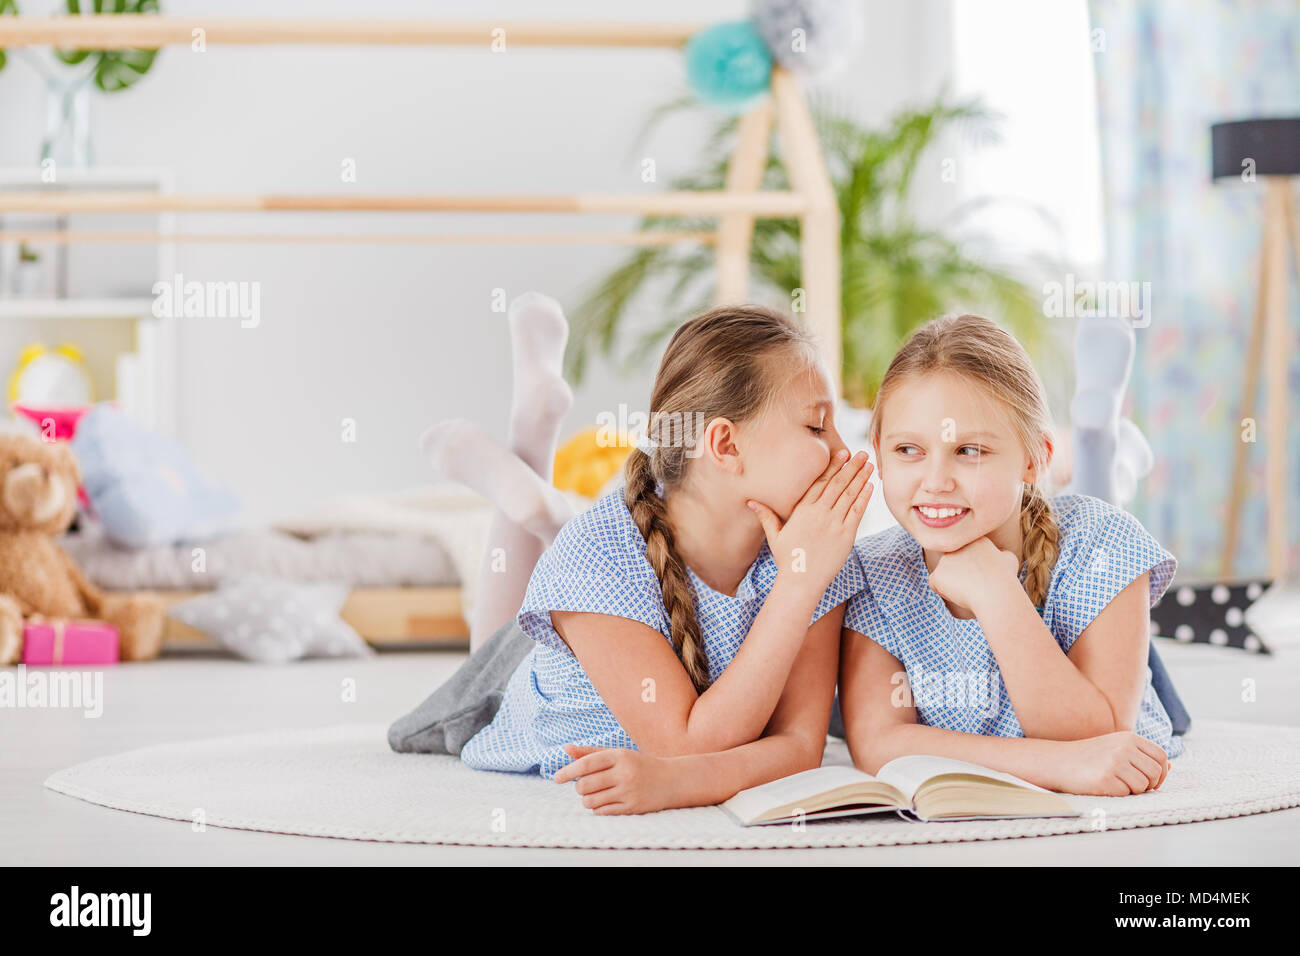 Mischievous twin sisters whispering secrets, lying on a white rug in a cozy children's bedroom - Stock Image